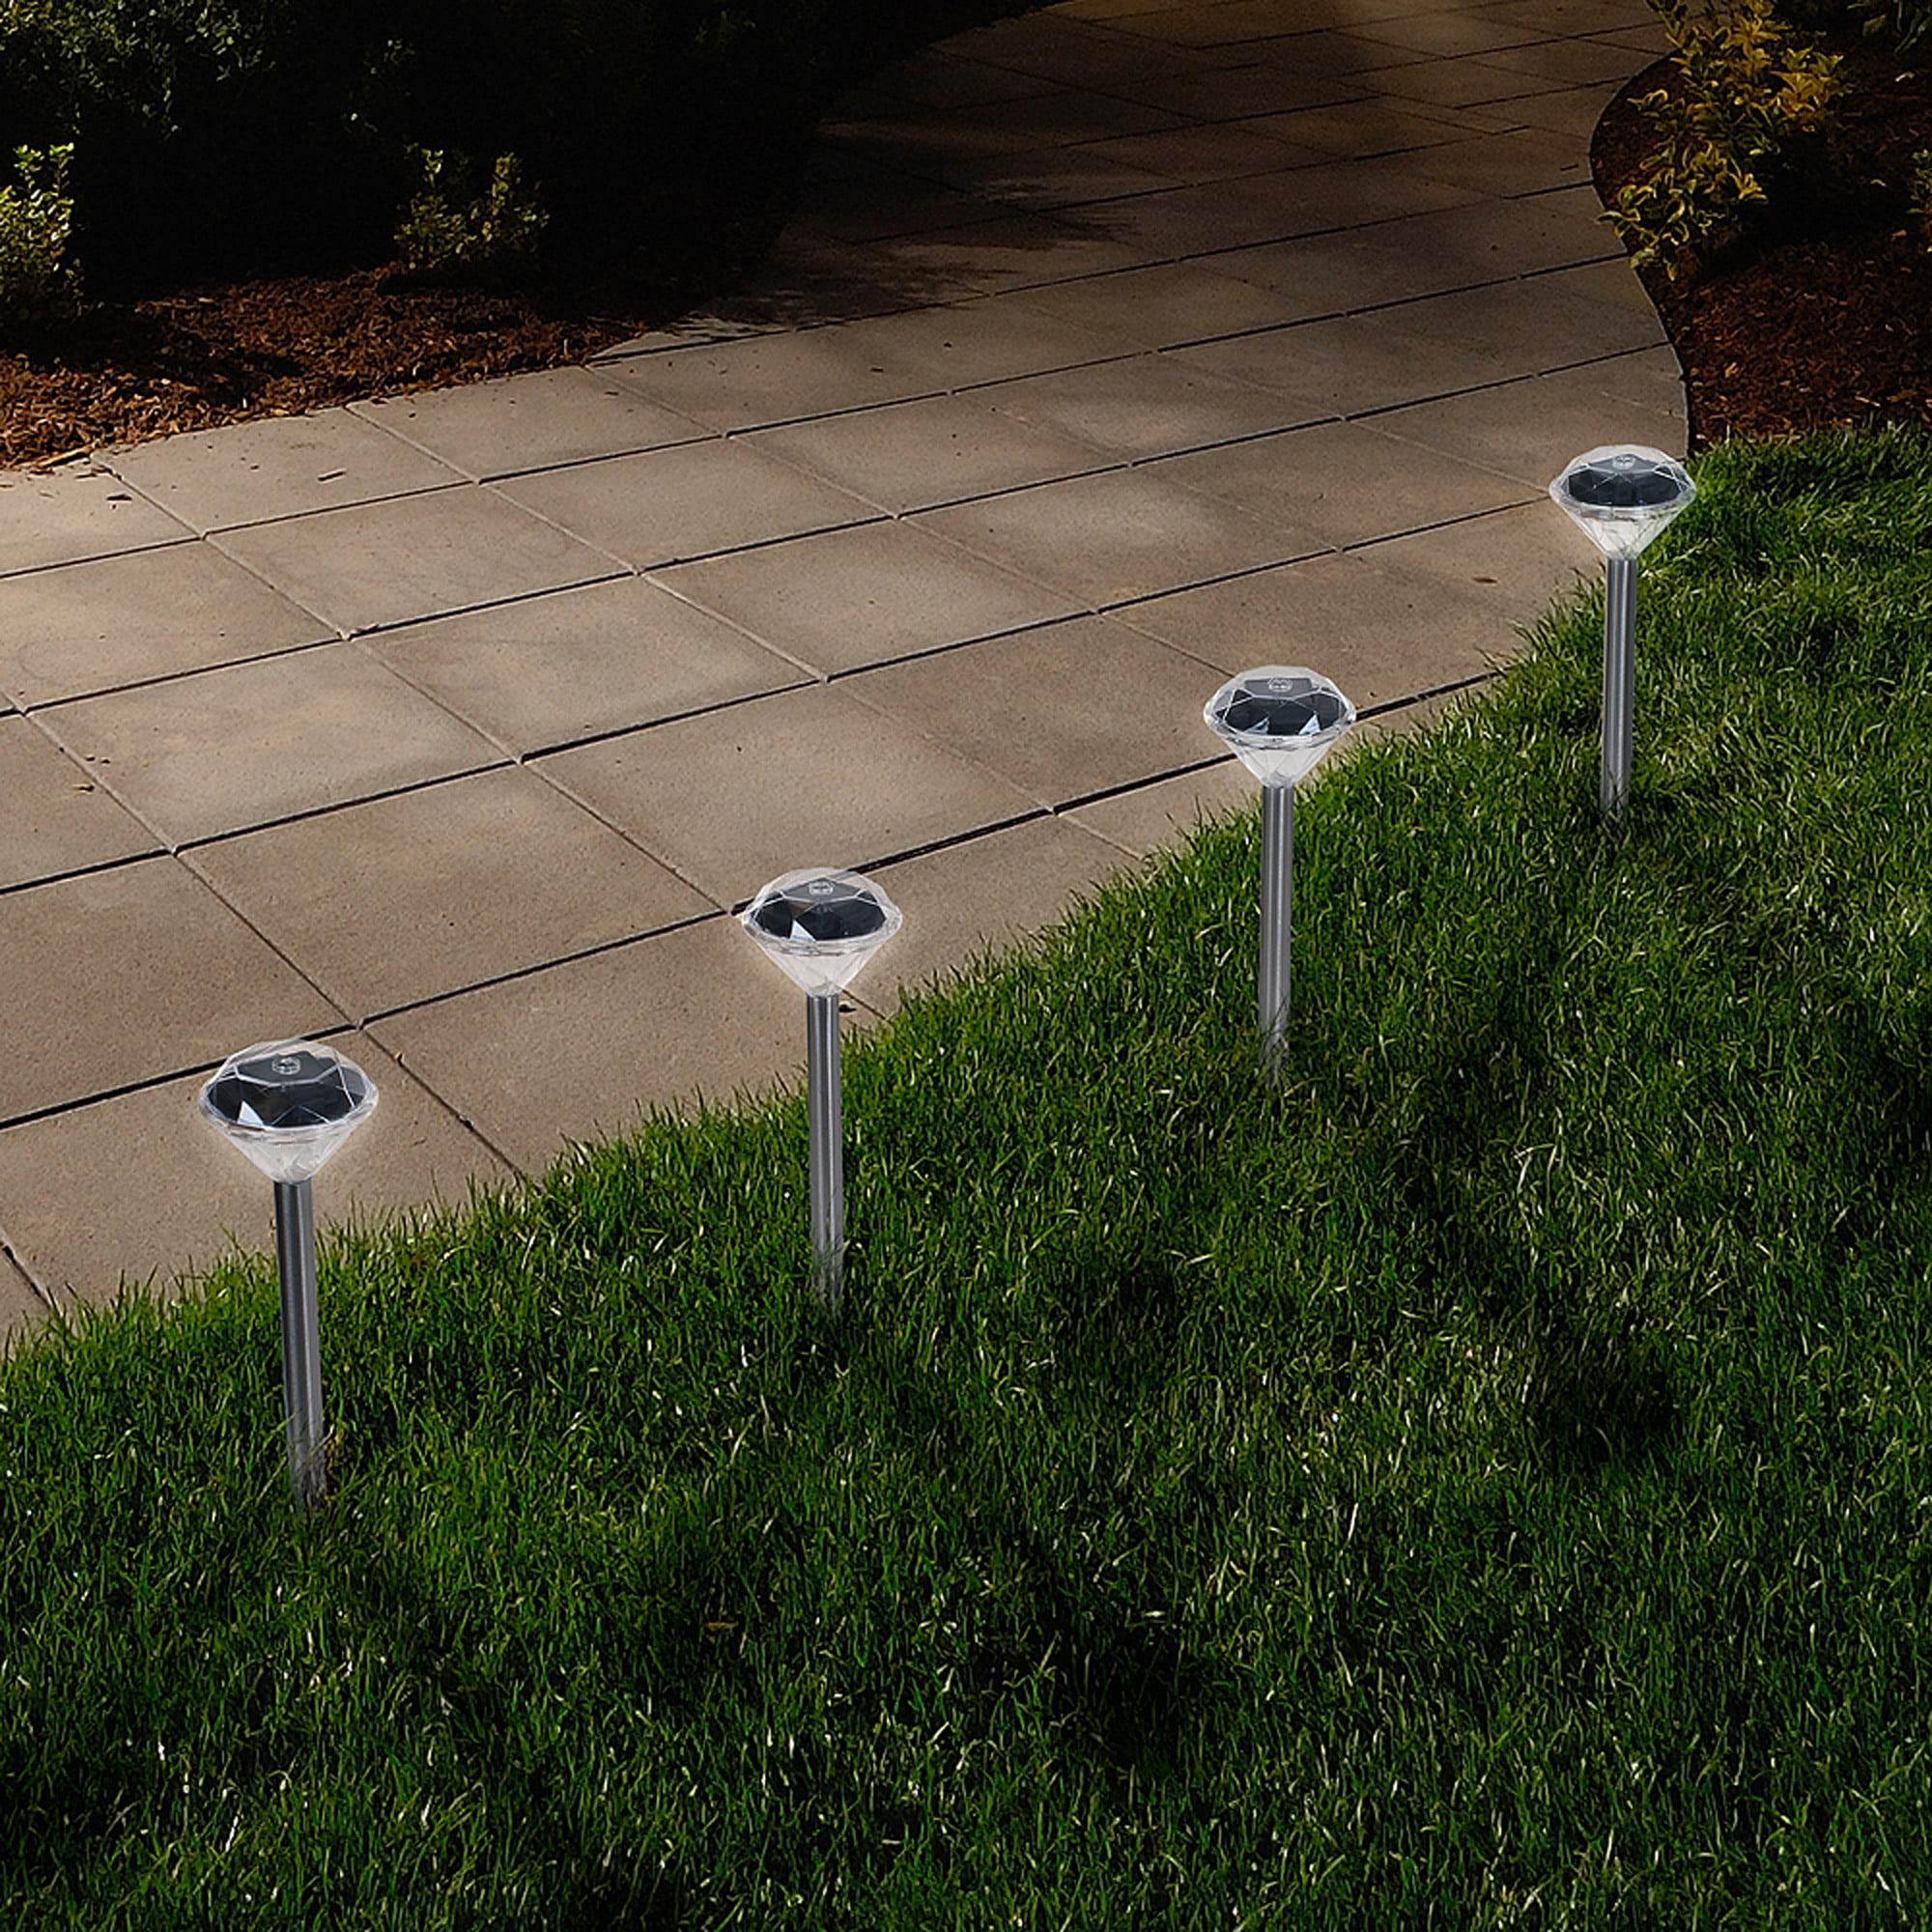 Solar Powered Lights (Set of 24) Low Voltage LED Outdoor Steak Spotlight Fixture for Gardens, Pathways, and... by Trademark Global LLC